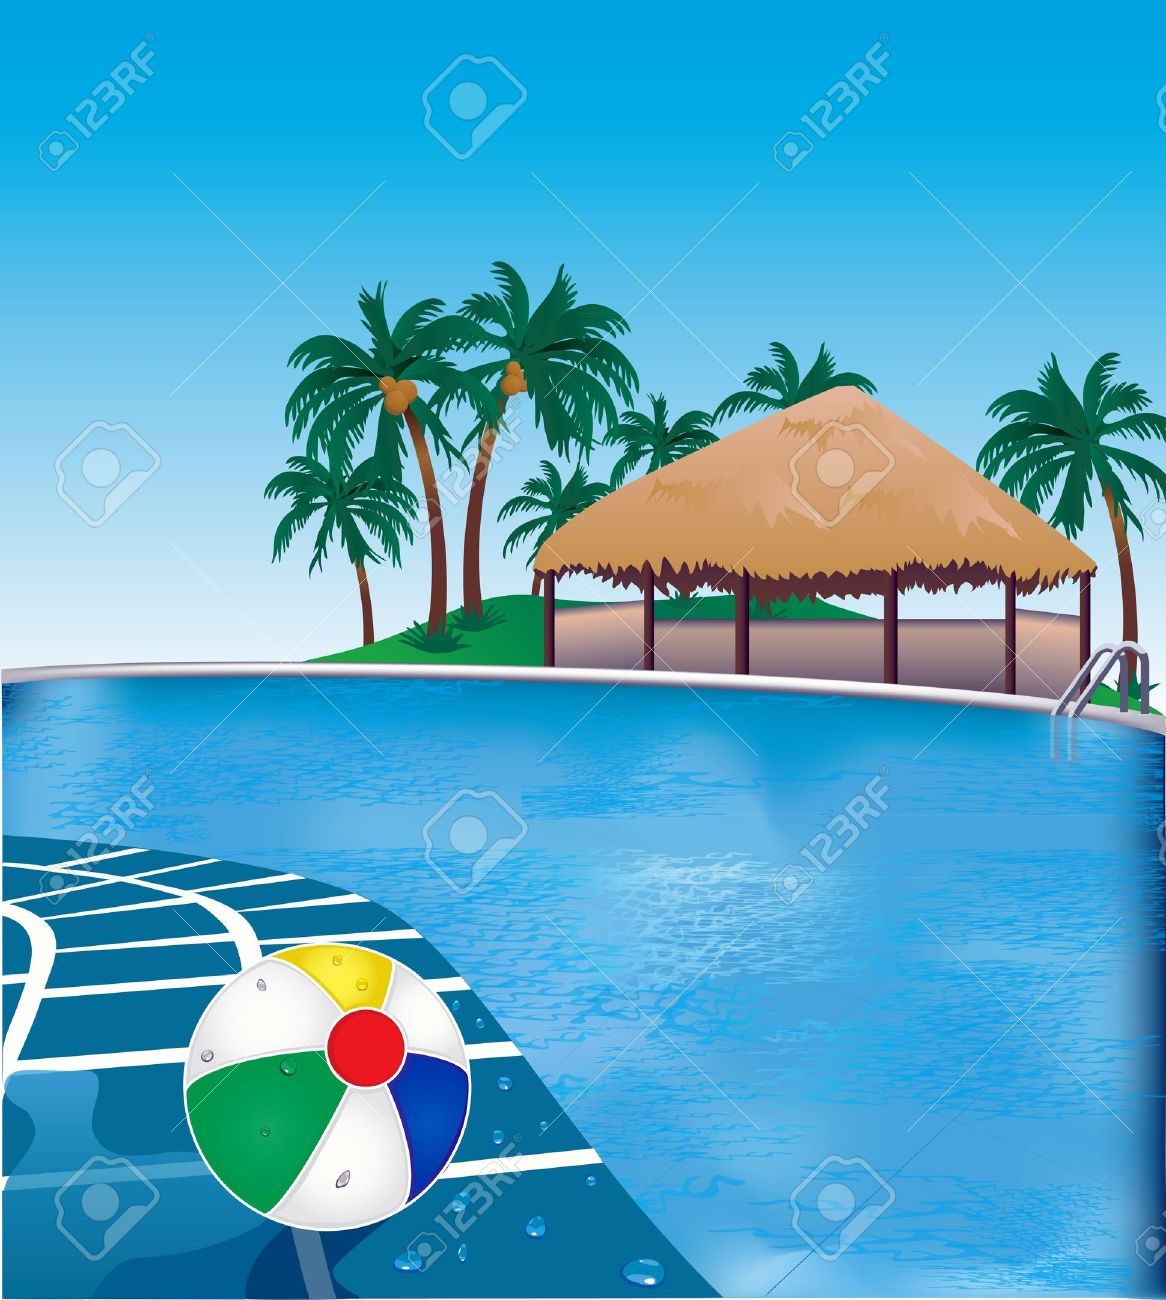 Swimming Pool Beach Ball Background 2,922 resort pool stock vector illustration and royalty free